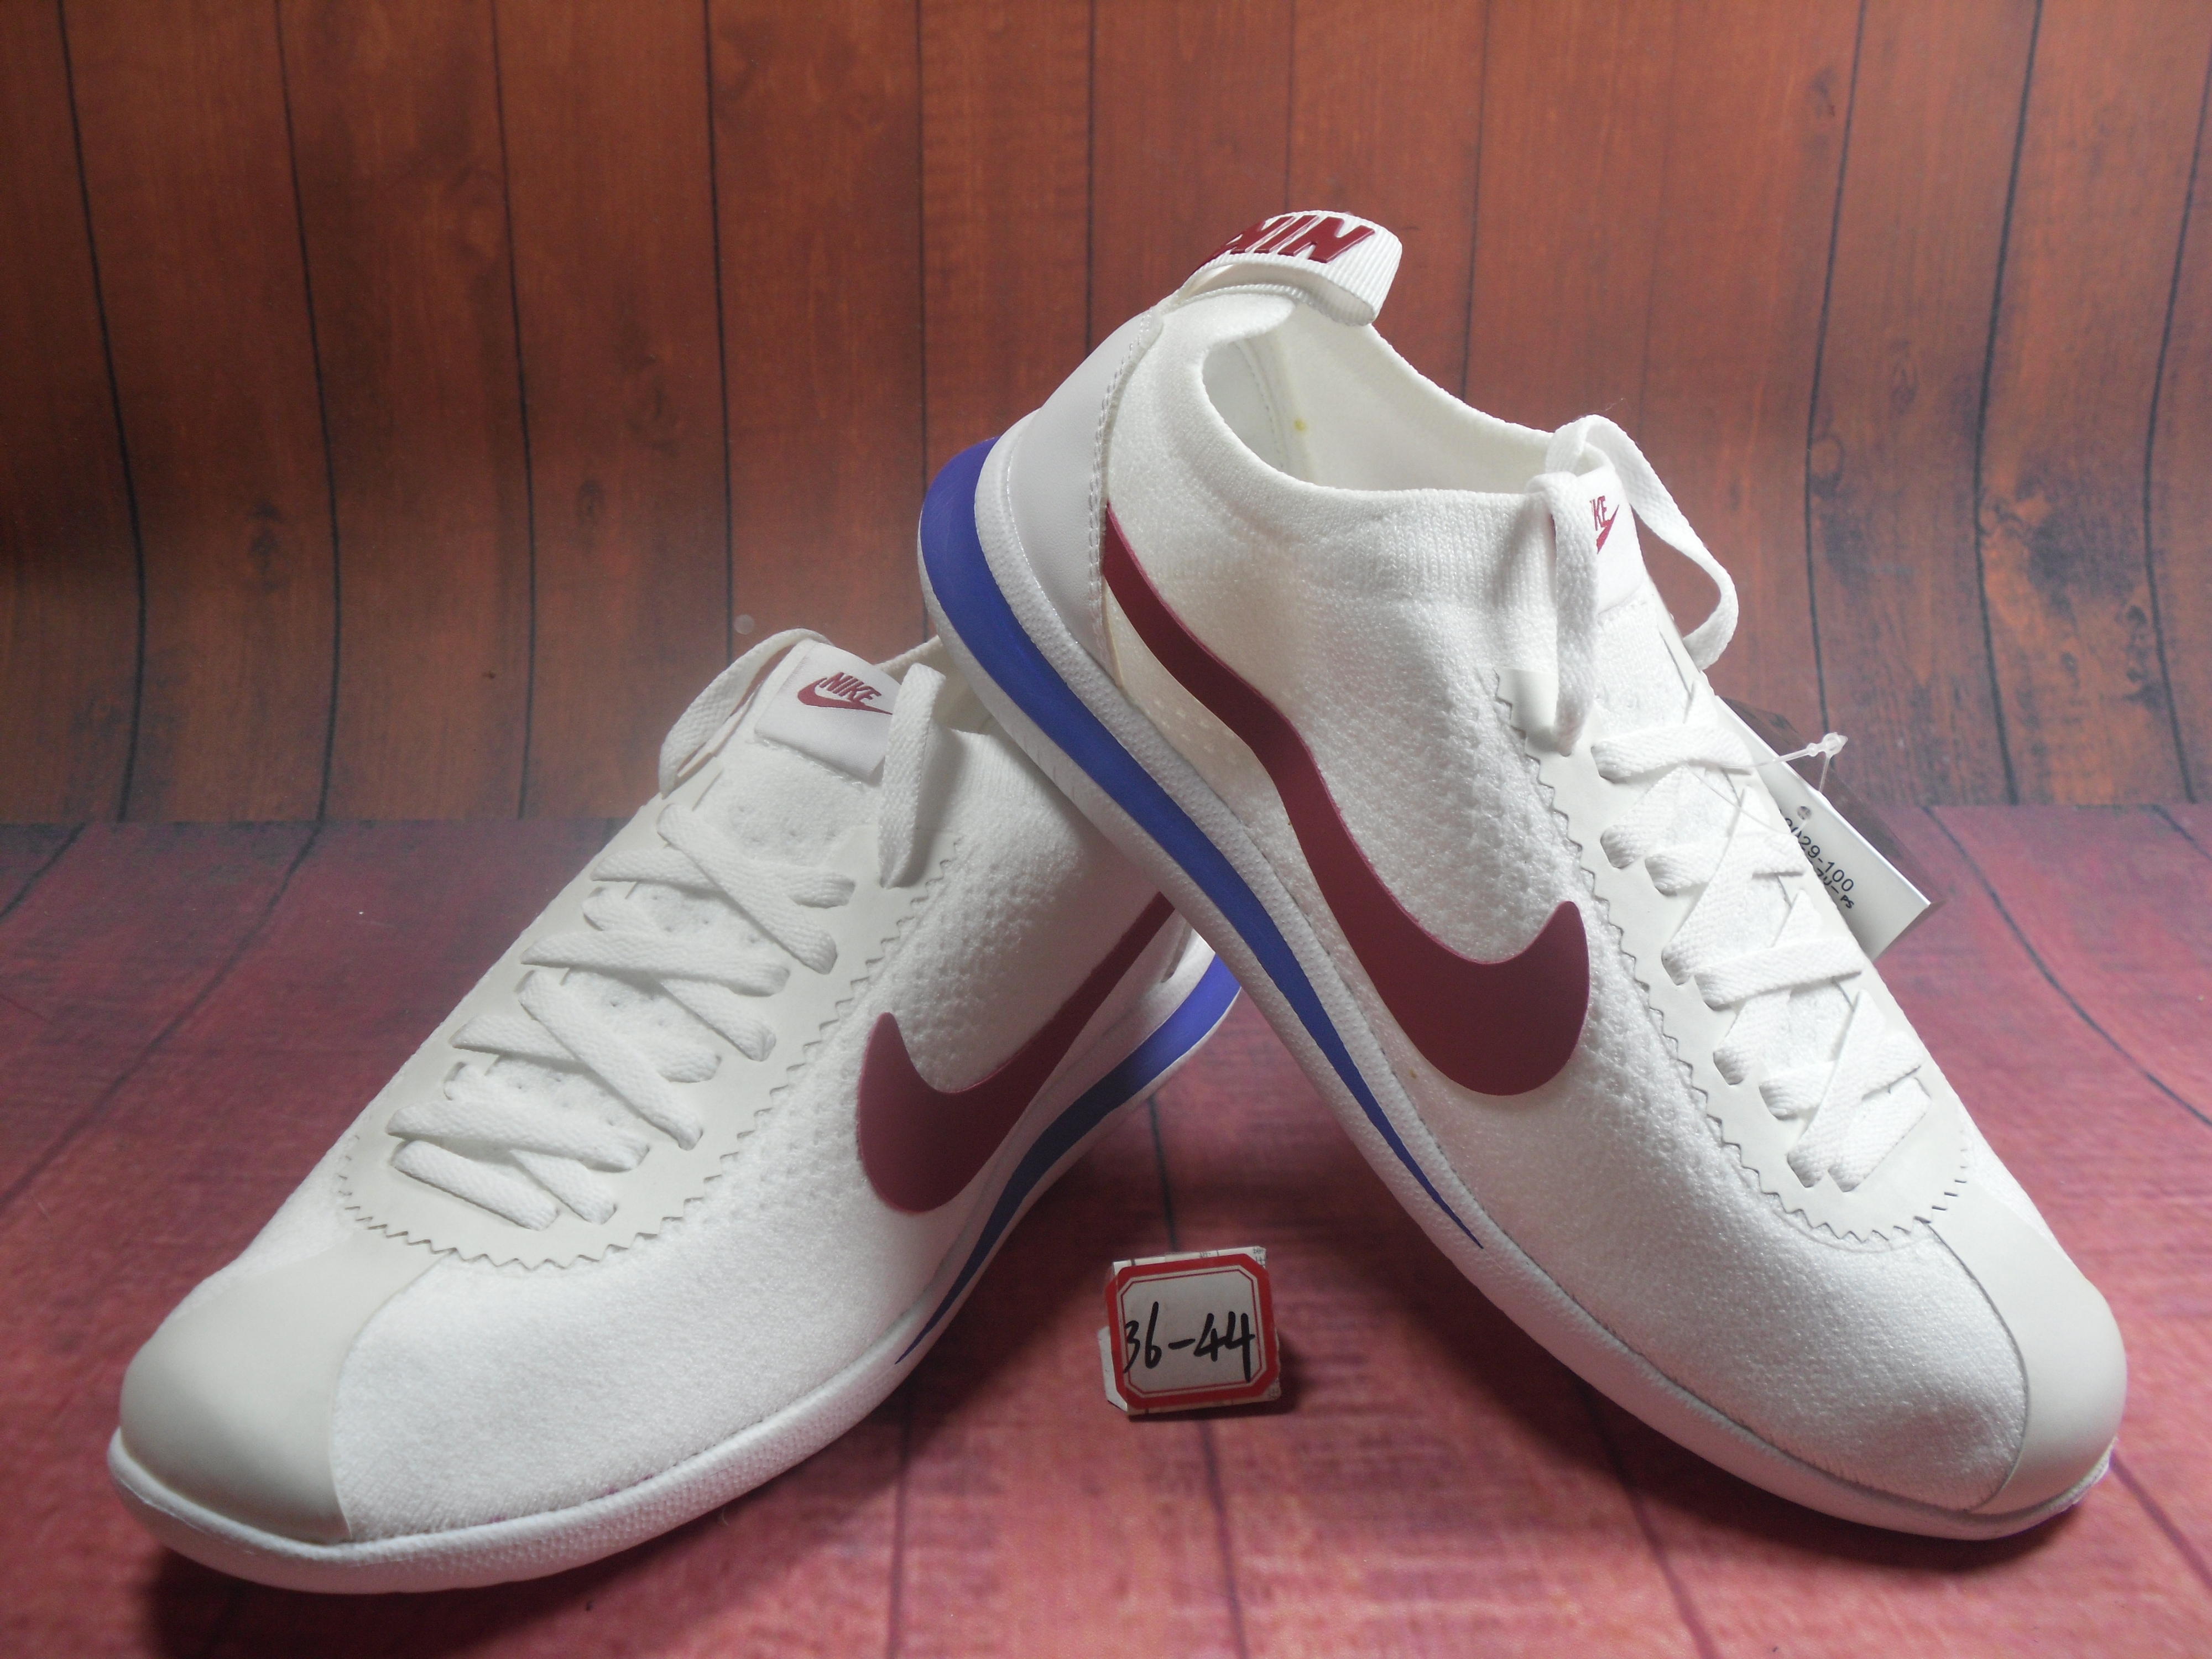 Nike NSW Cortez Flyknit White Red Blue Shoes